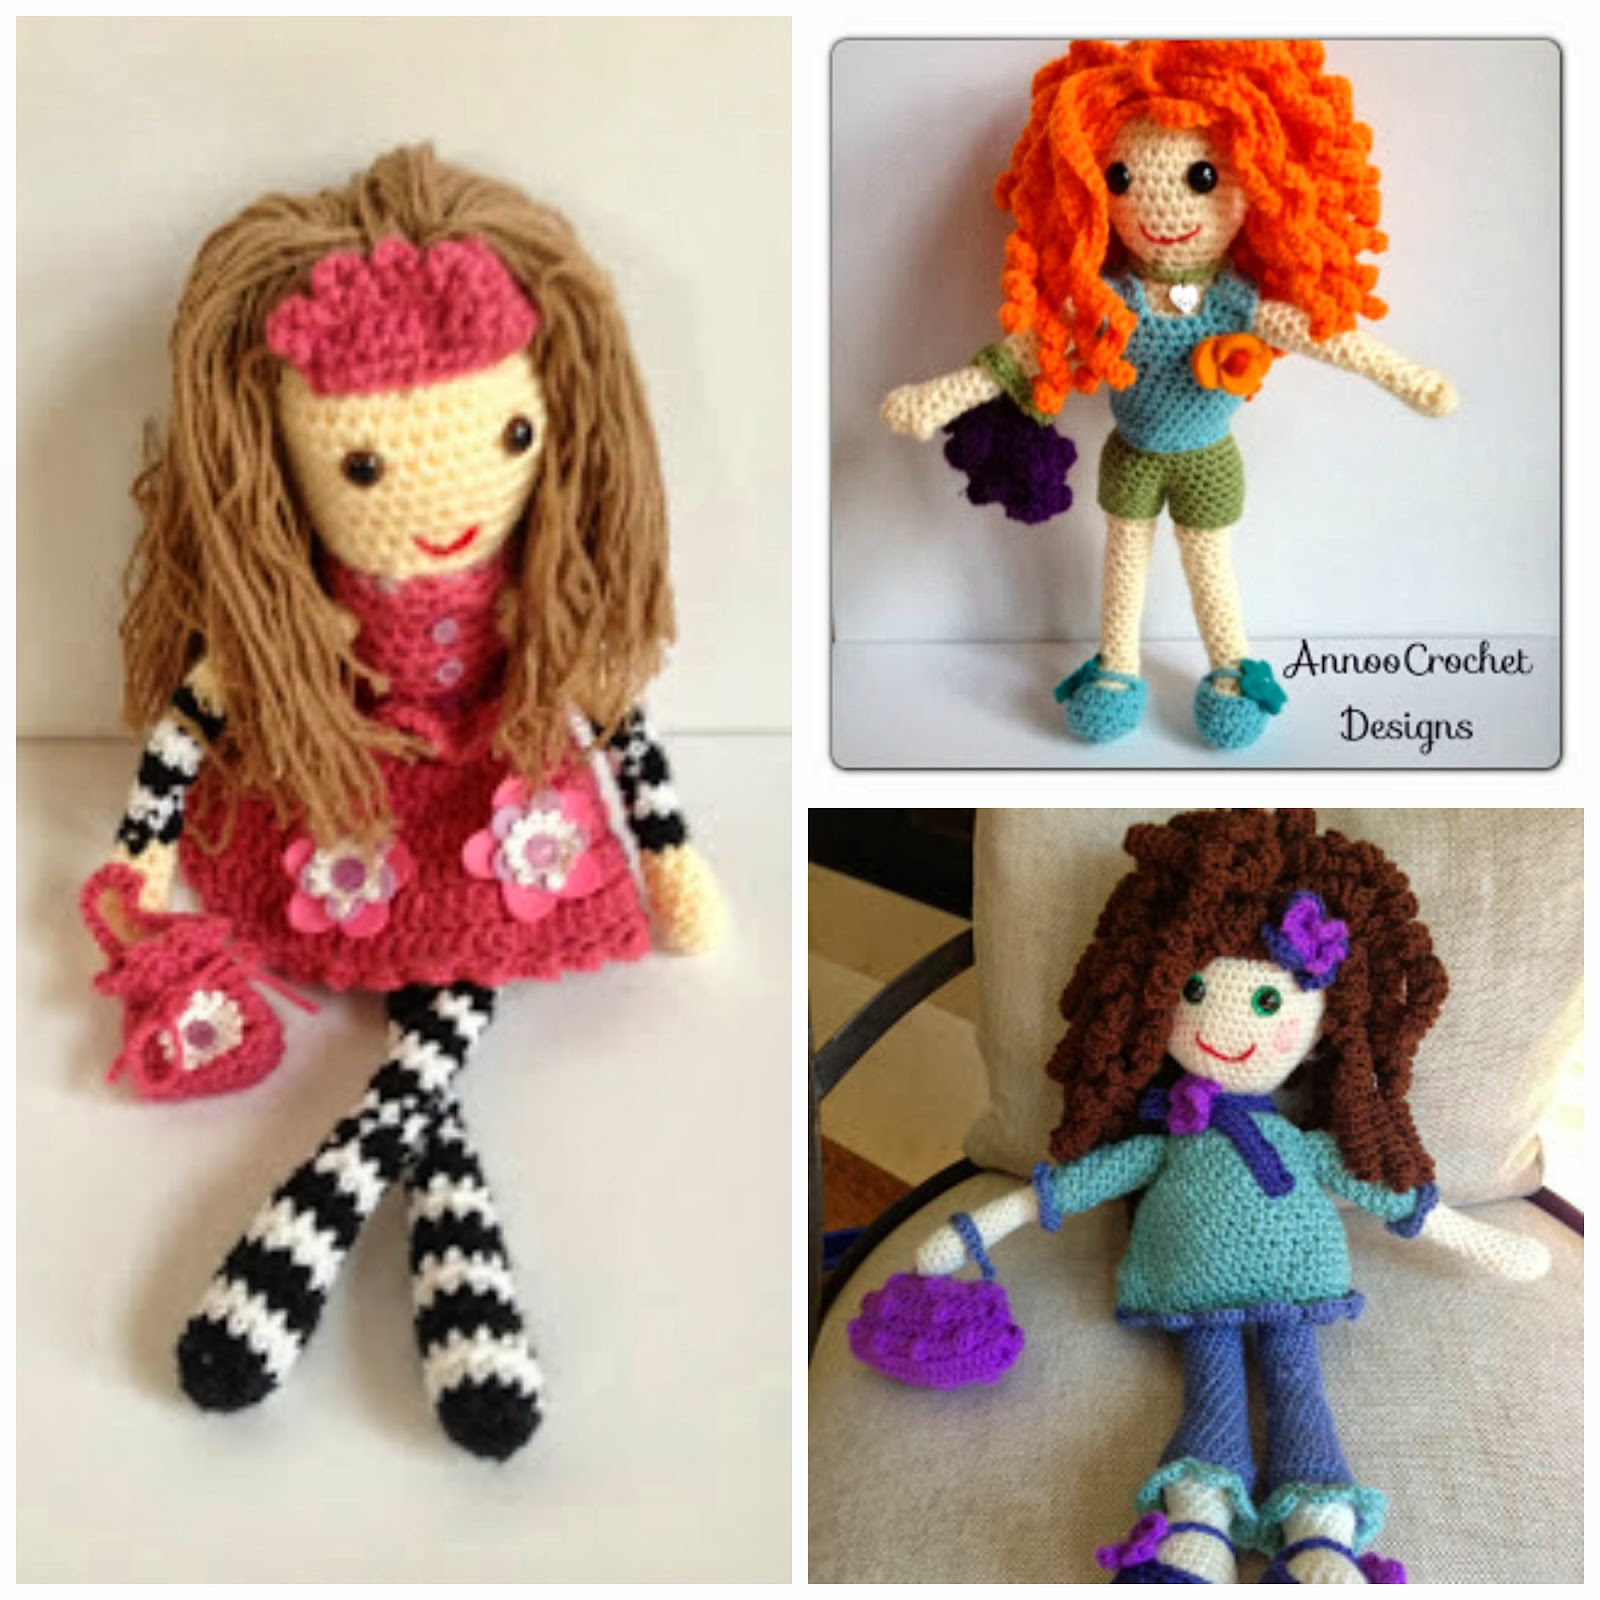 Basic Crochet Doll Pattern Free : 20+ FREE Crochet Doll Patterns (Free Crochet Patterns and ...